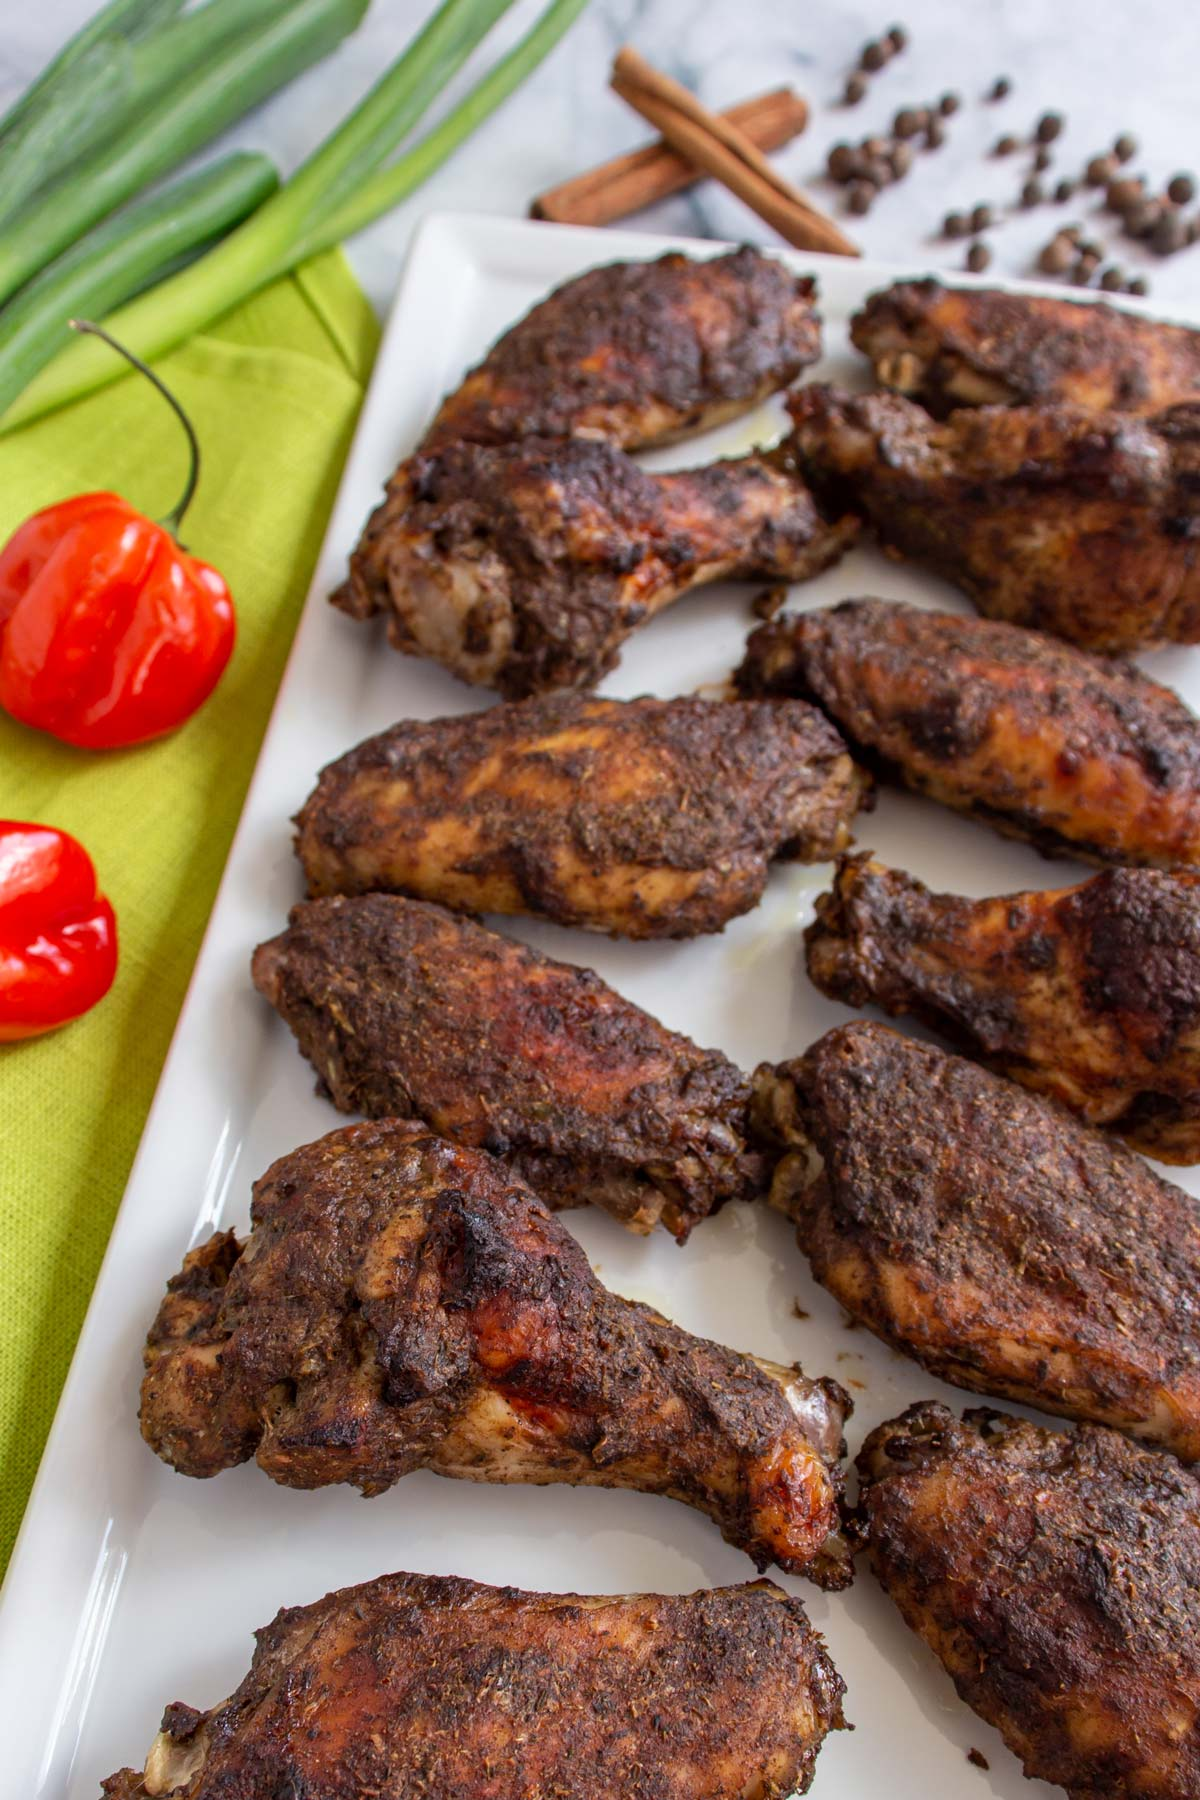 Baked chicken wings arranged in 2 rows on a white rectangular plate.